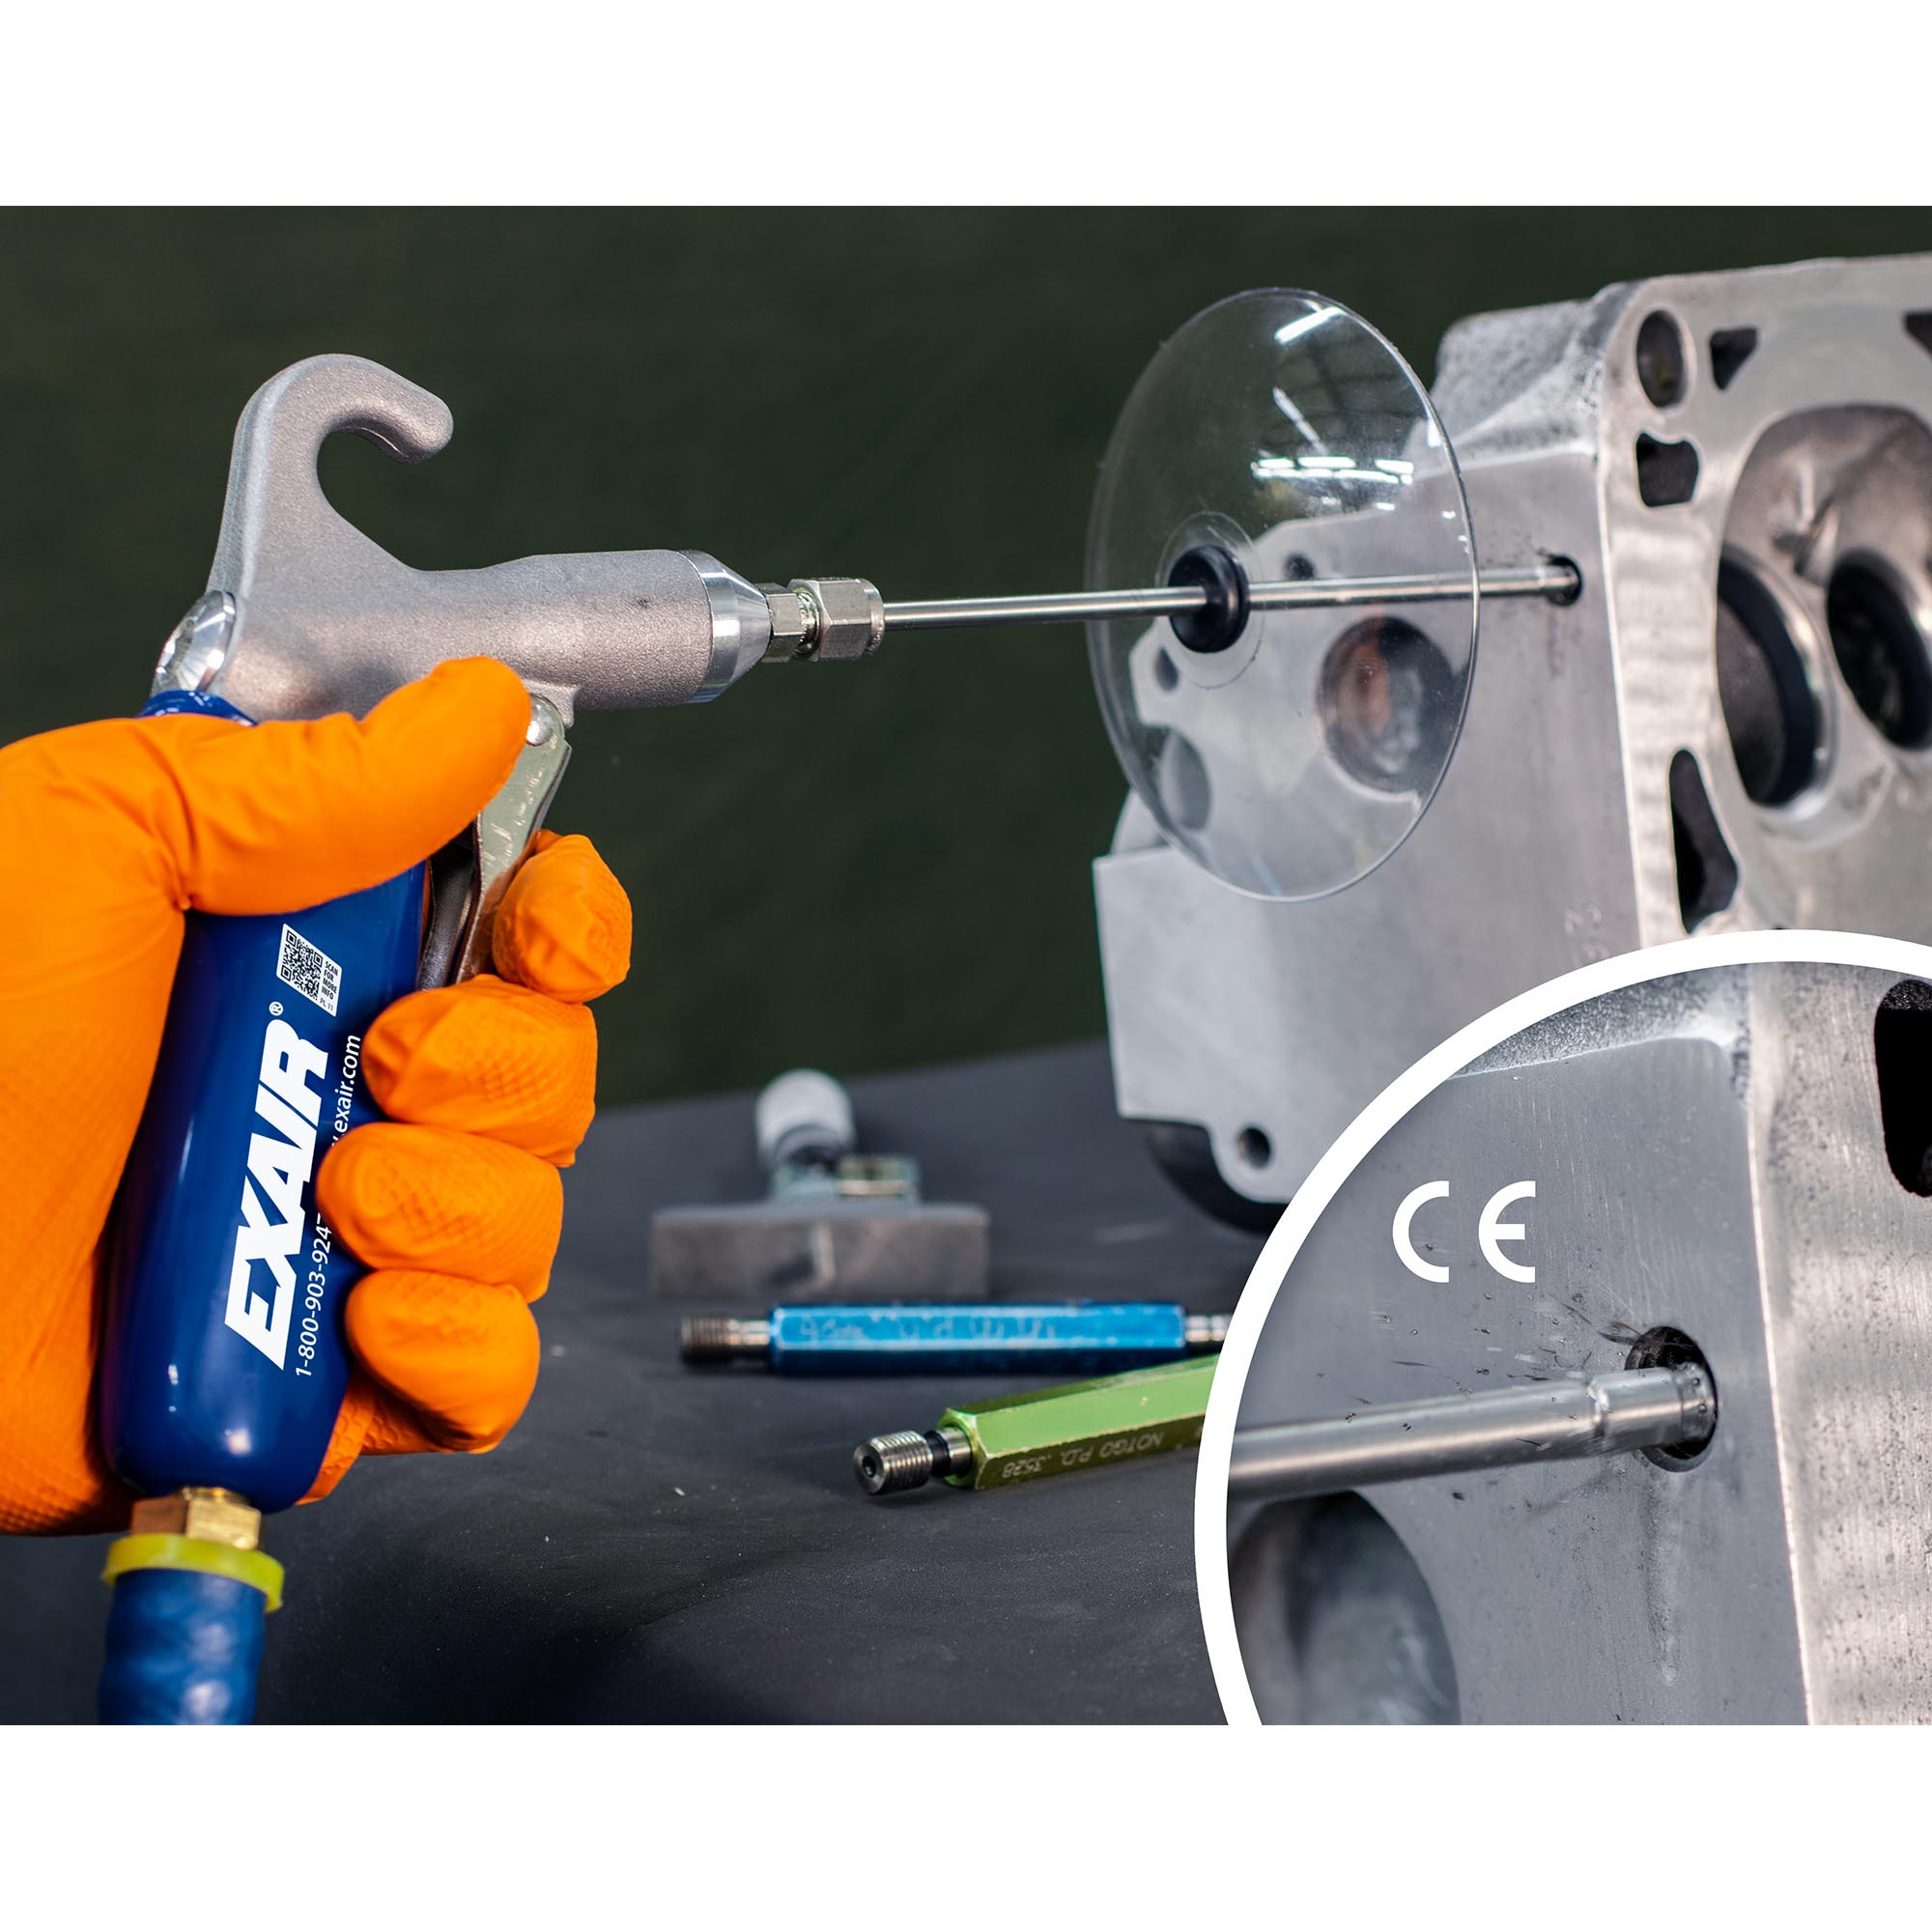 The Model 1210-CS Soft Grip Safety Air Gun keeps a drilling process free of machined spirals.